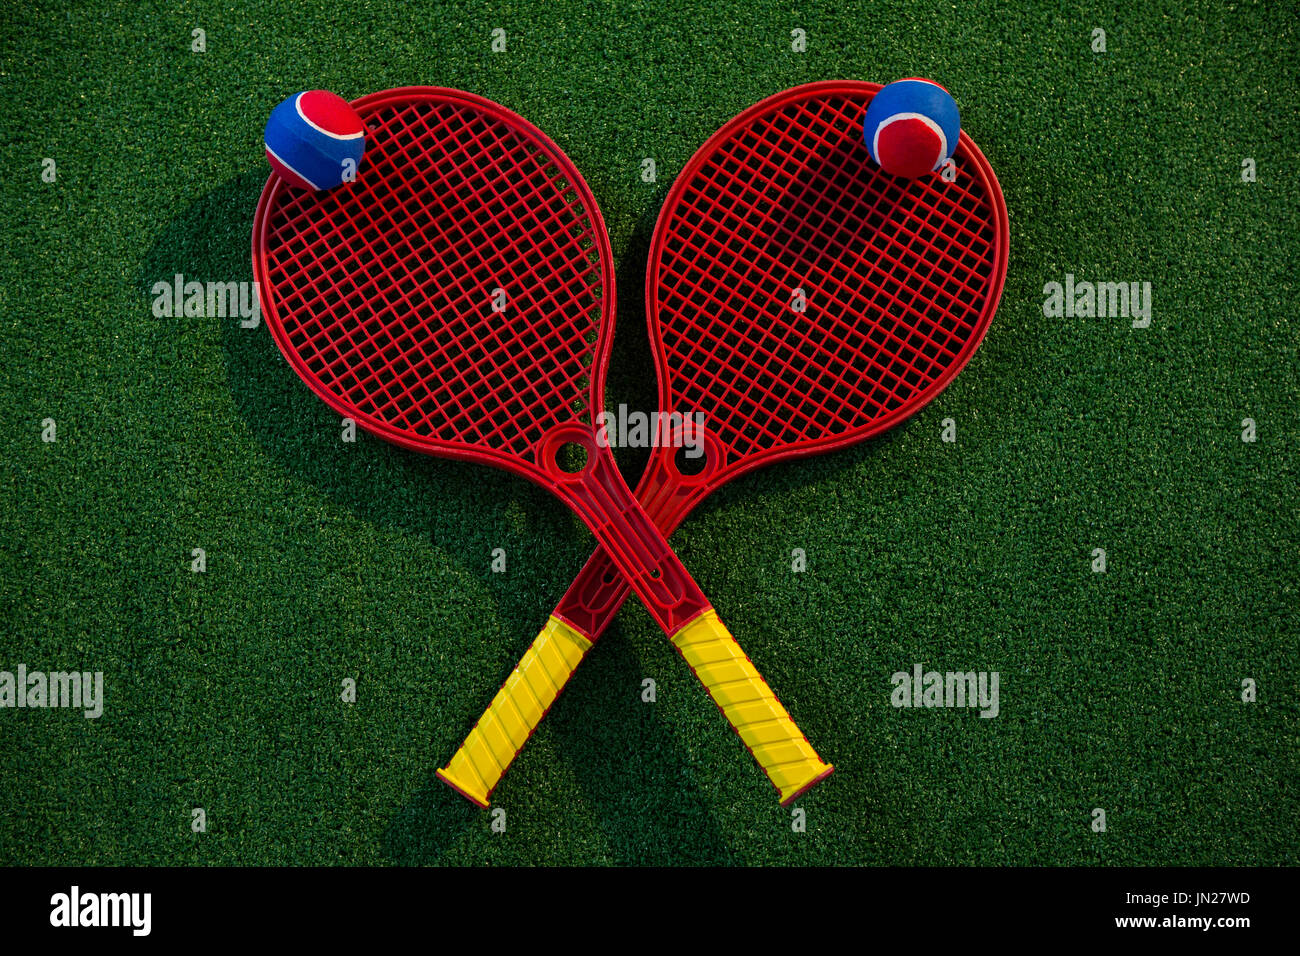 Overhead view of colorful tennis balls on rackets at plying field - Stock Image